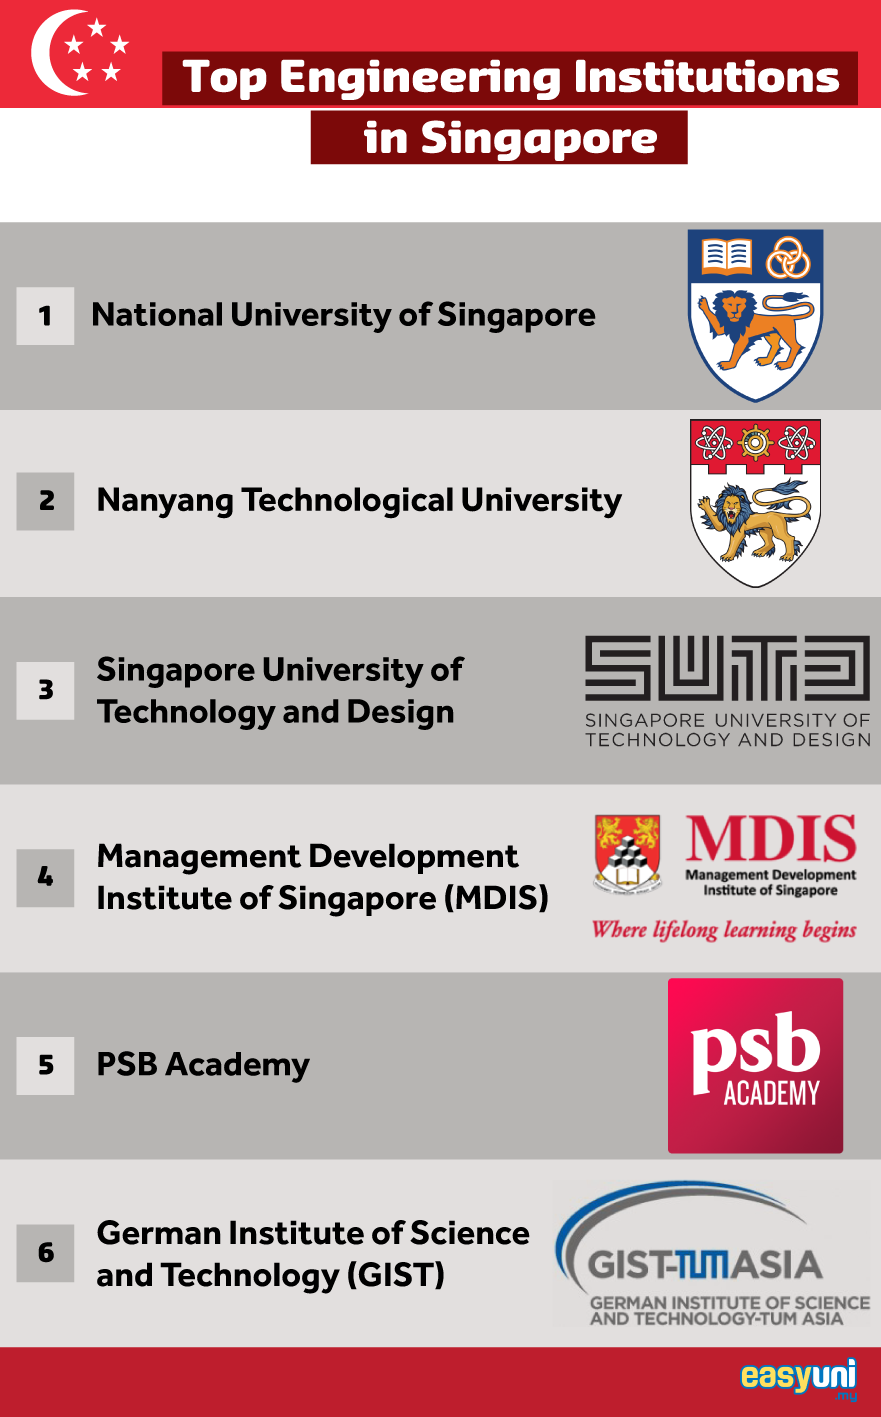 Top Engineering Institutions in Singapore Infographic